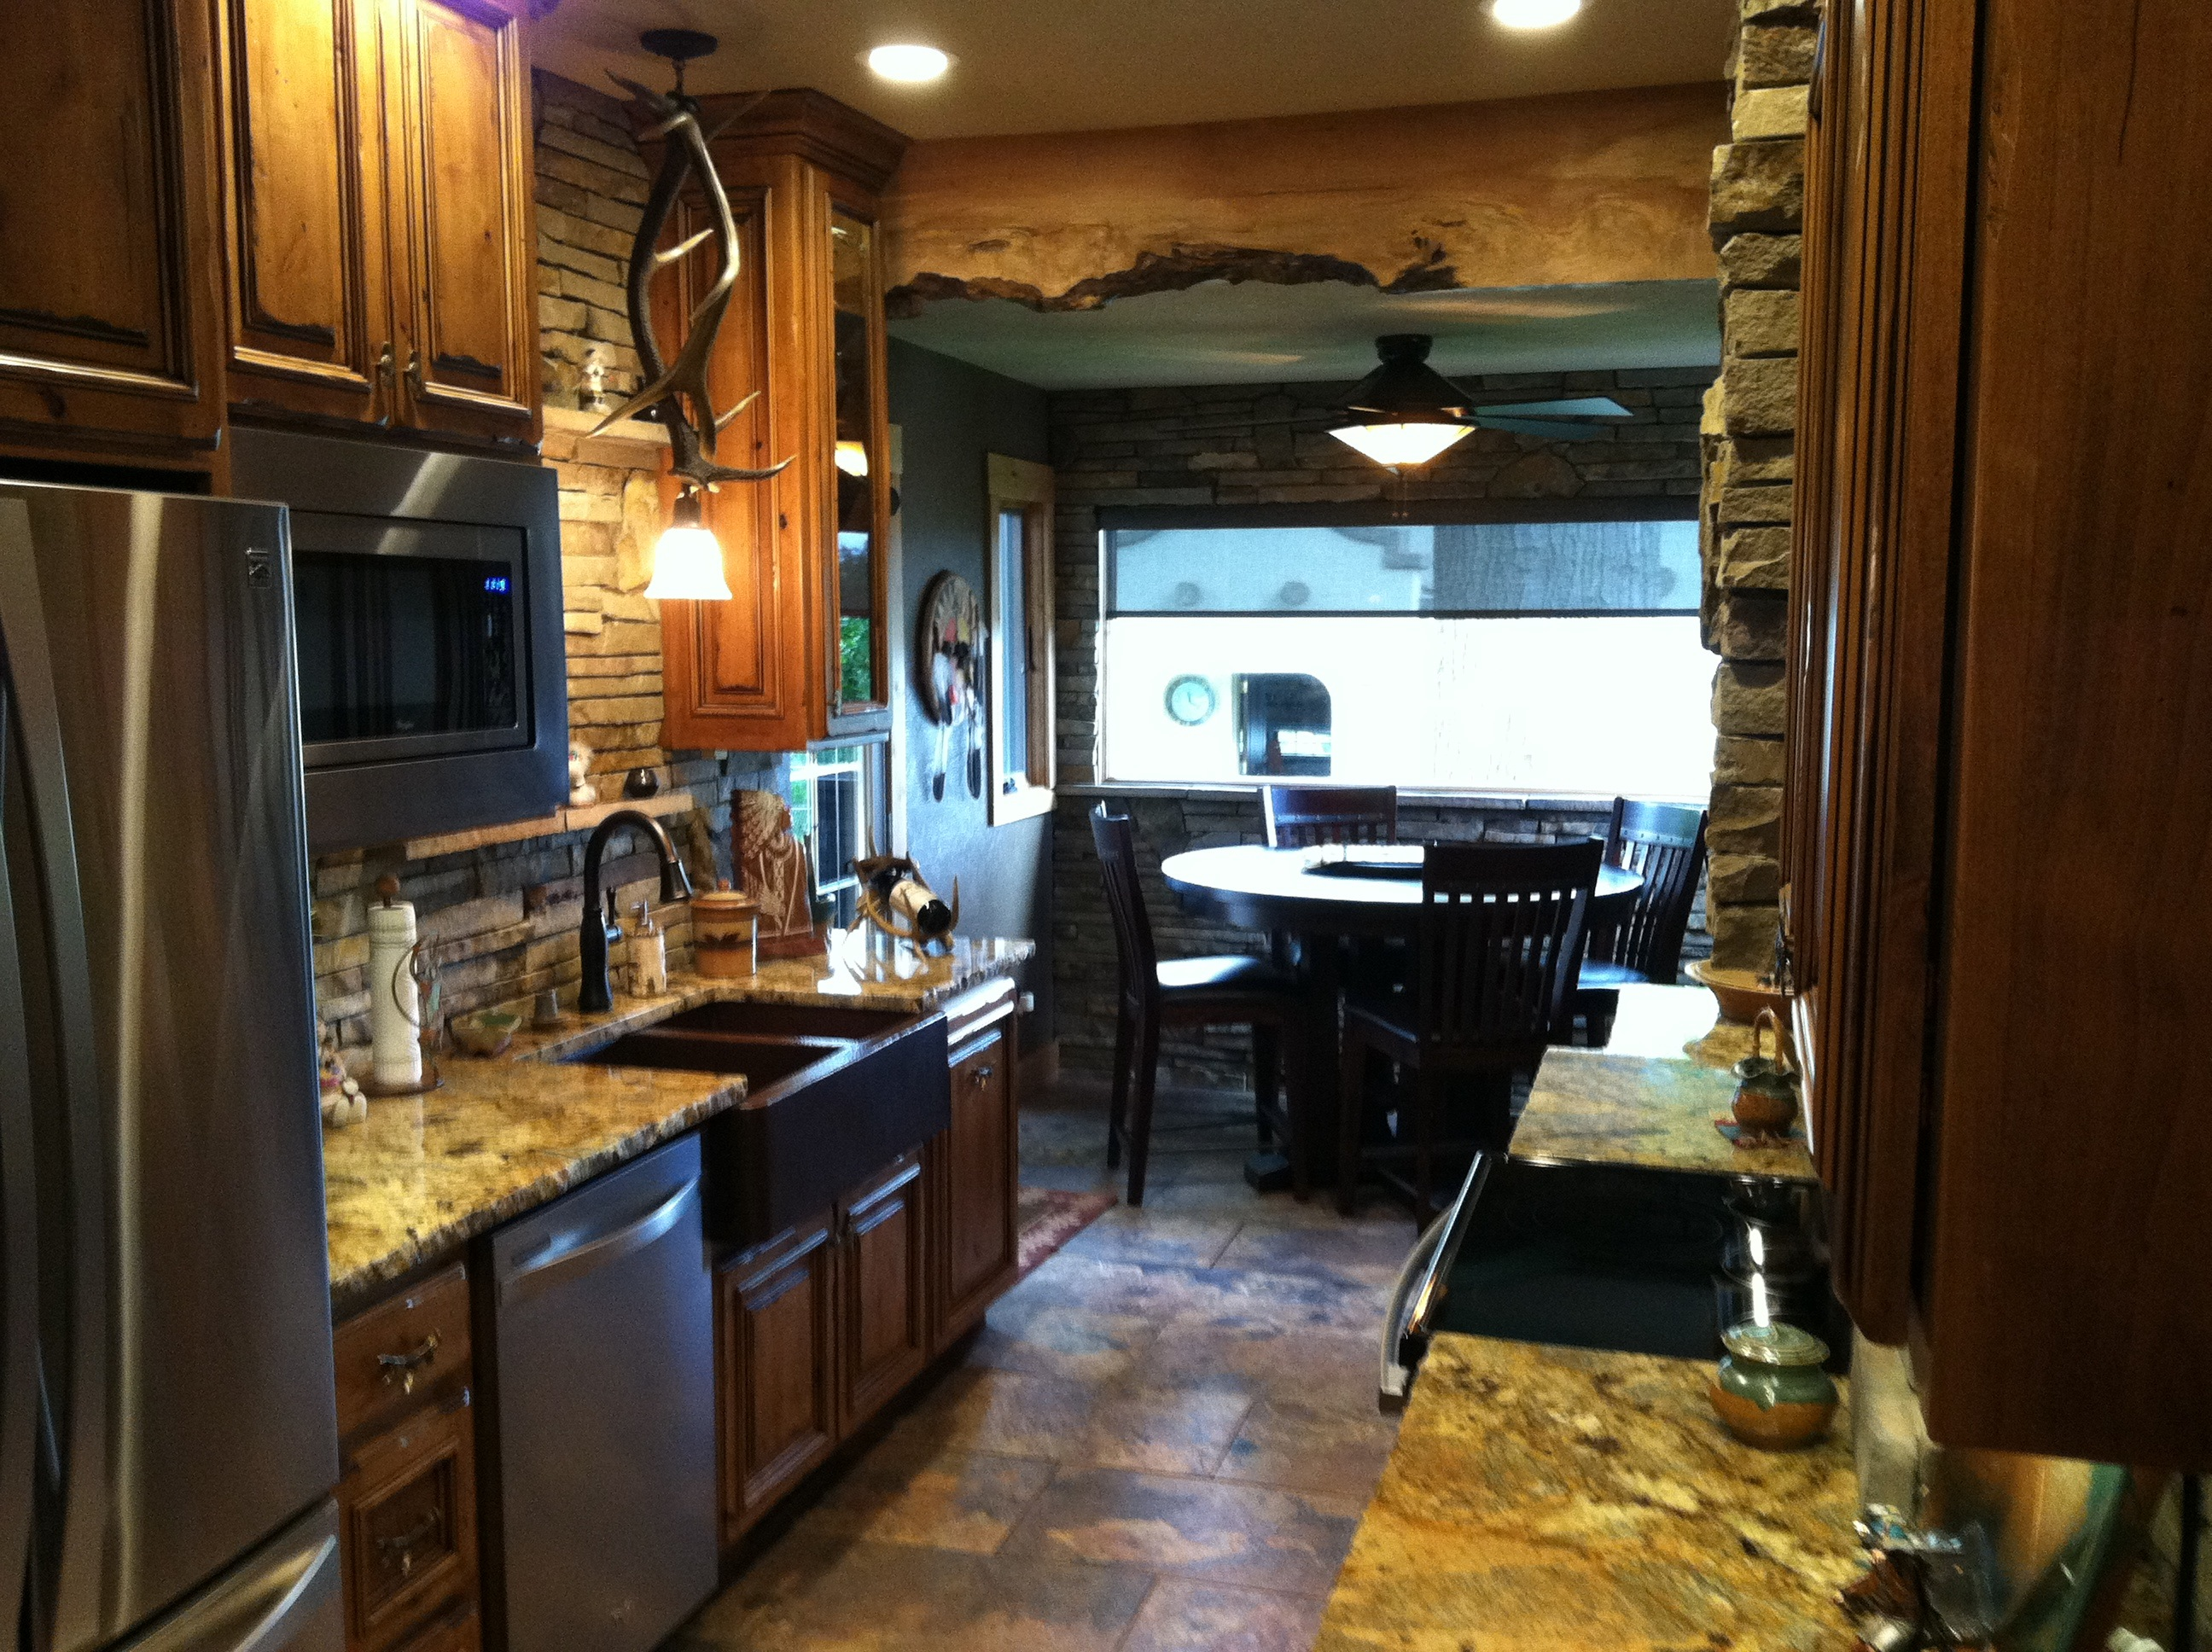 residential kitchen remodeling lincoln ne Covey Kitchen Remodel Beatrice NE